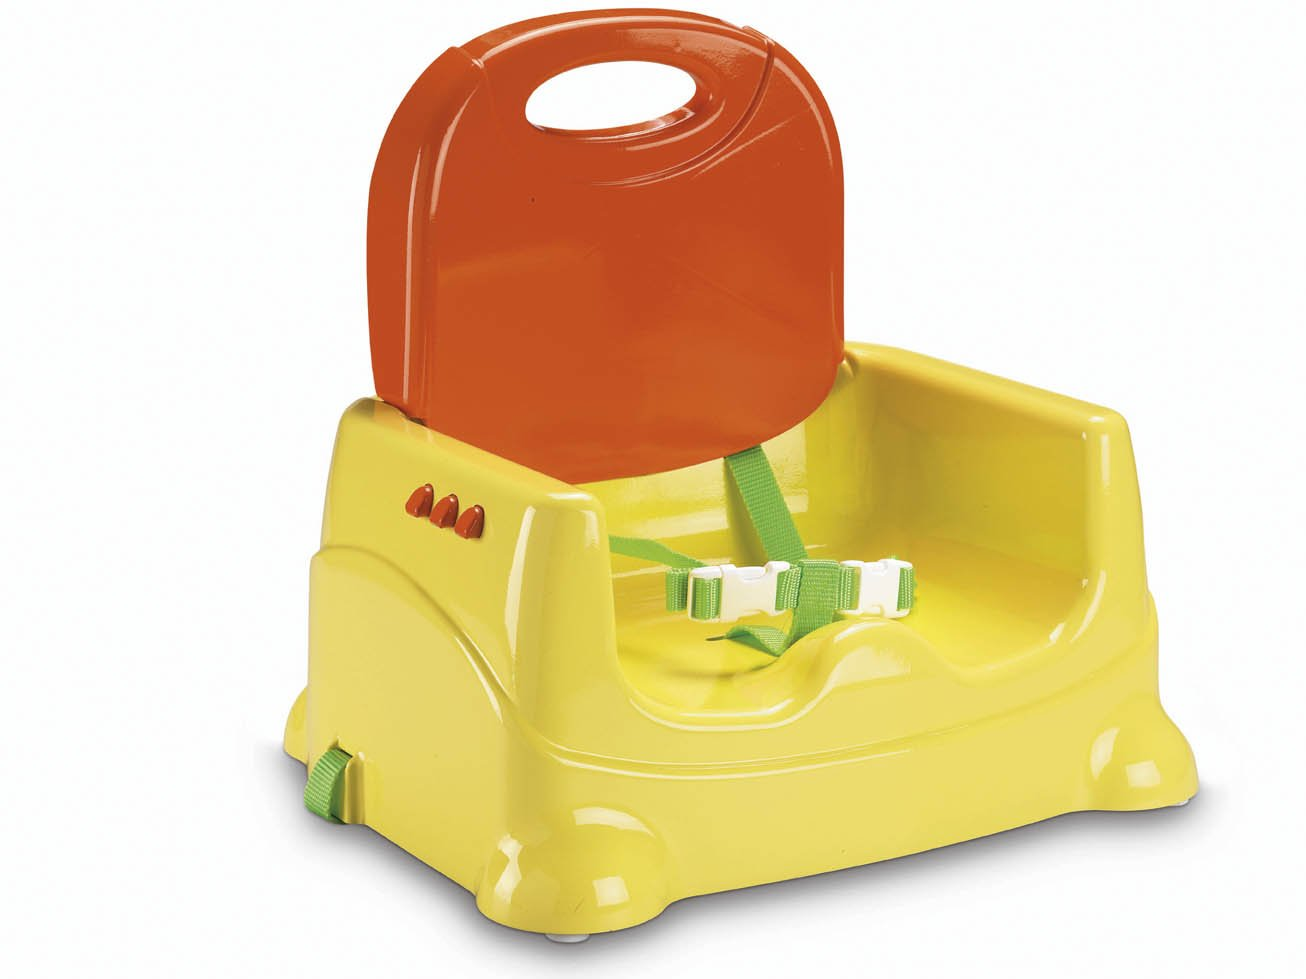 Fisher price booster chair - Amazon Com Fisher Price Healthy Care Booster Seat Yellow And Orange Discontinued By Manufacturer Chair Booster Seats Baby